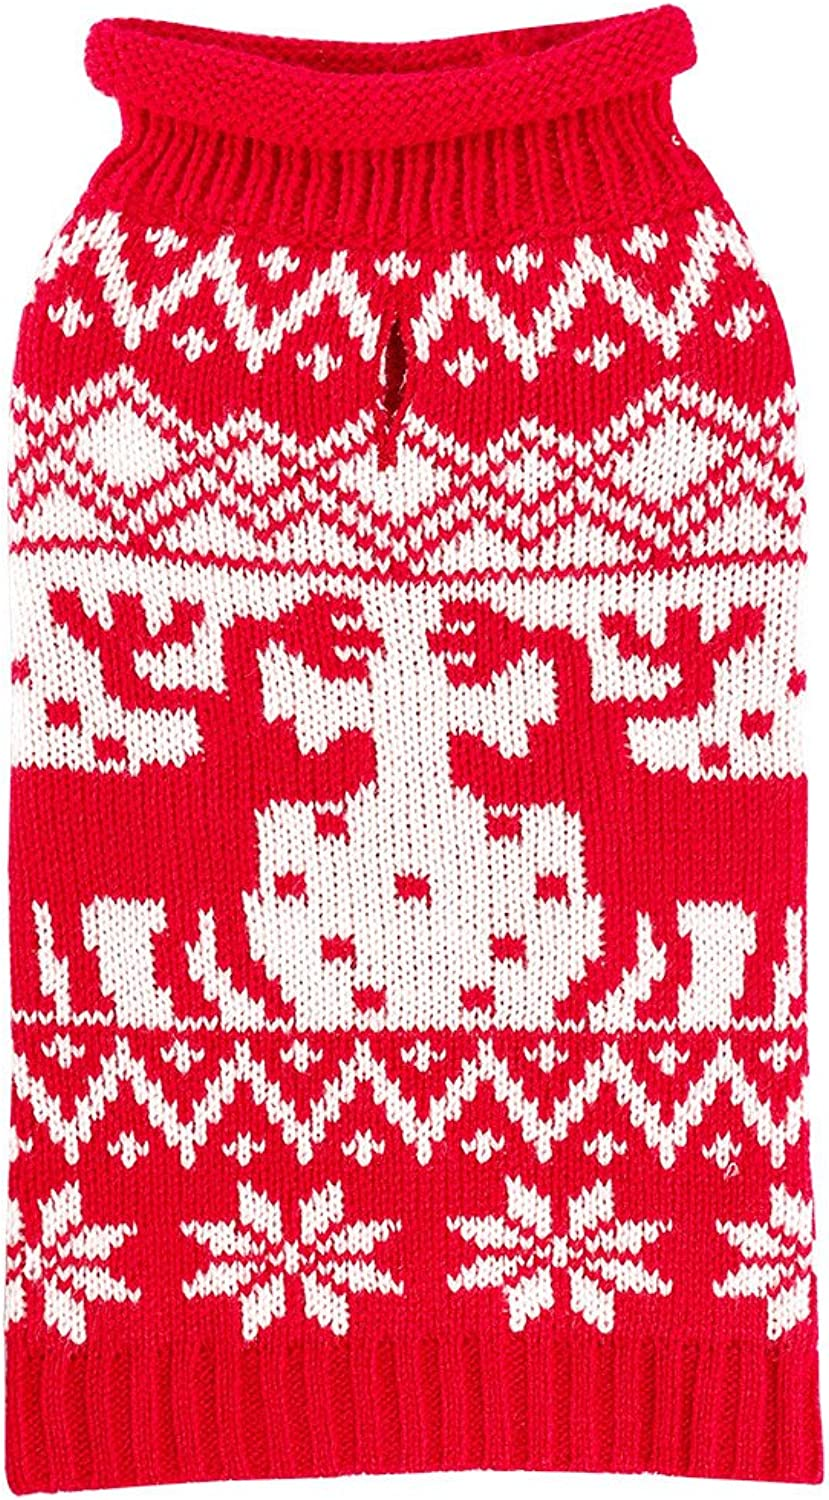 PETCEE Knit Sweater for Dogs,Dogs Christmas Sweater for Middle Dog(Back Length 12 ,Festive Red)